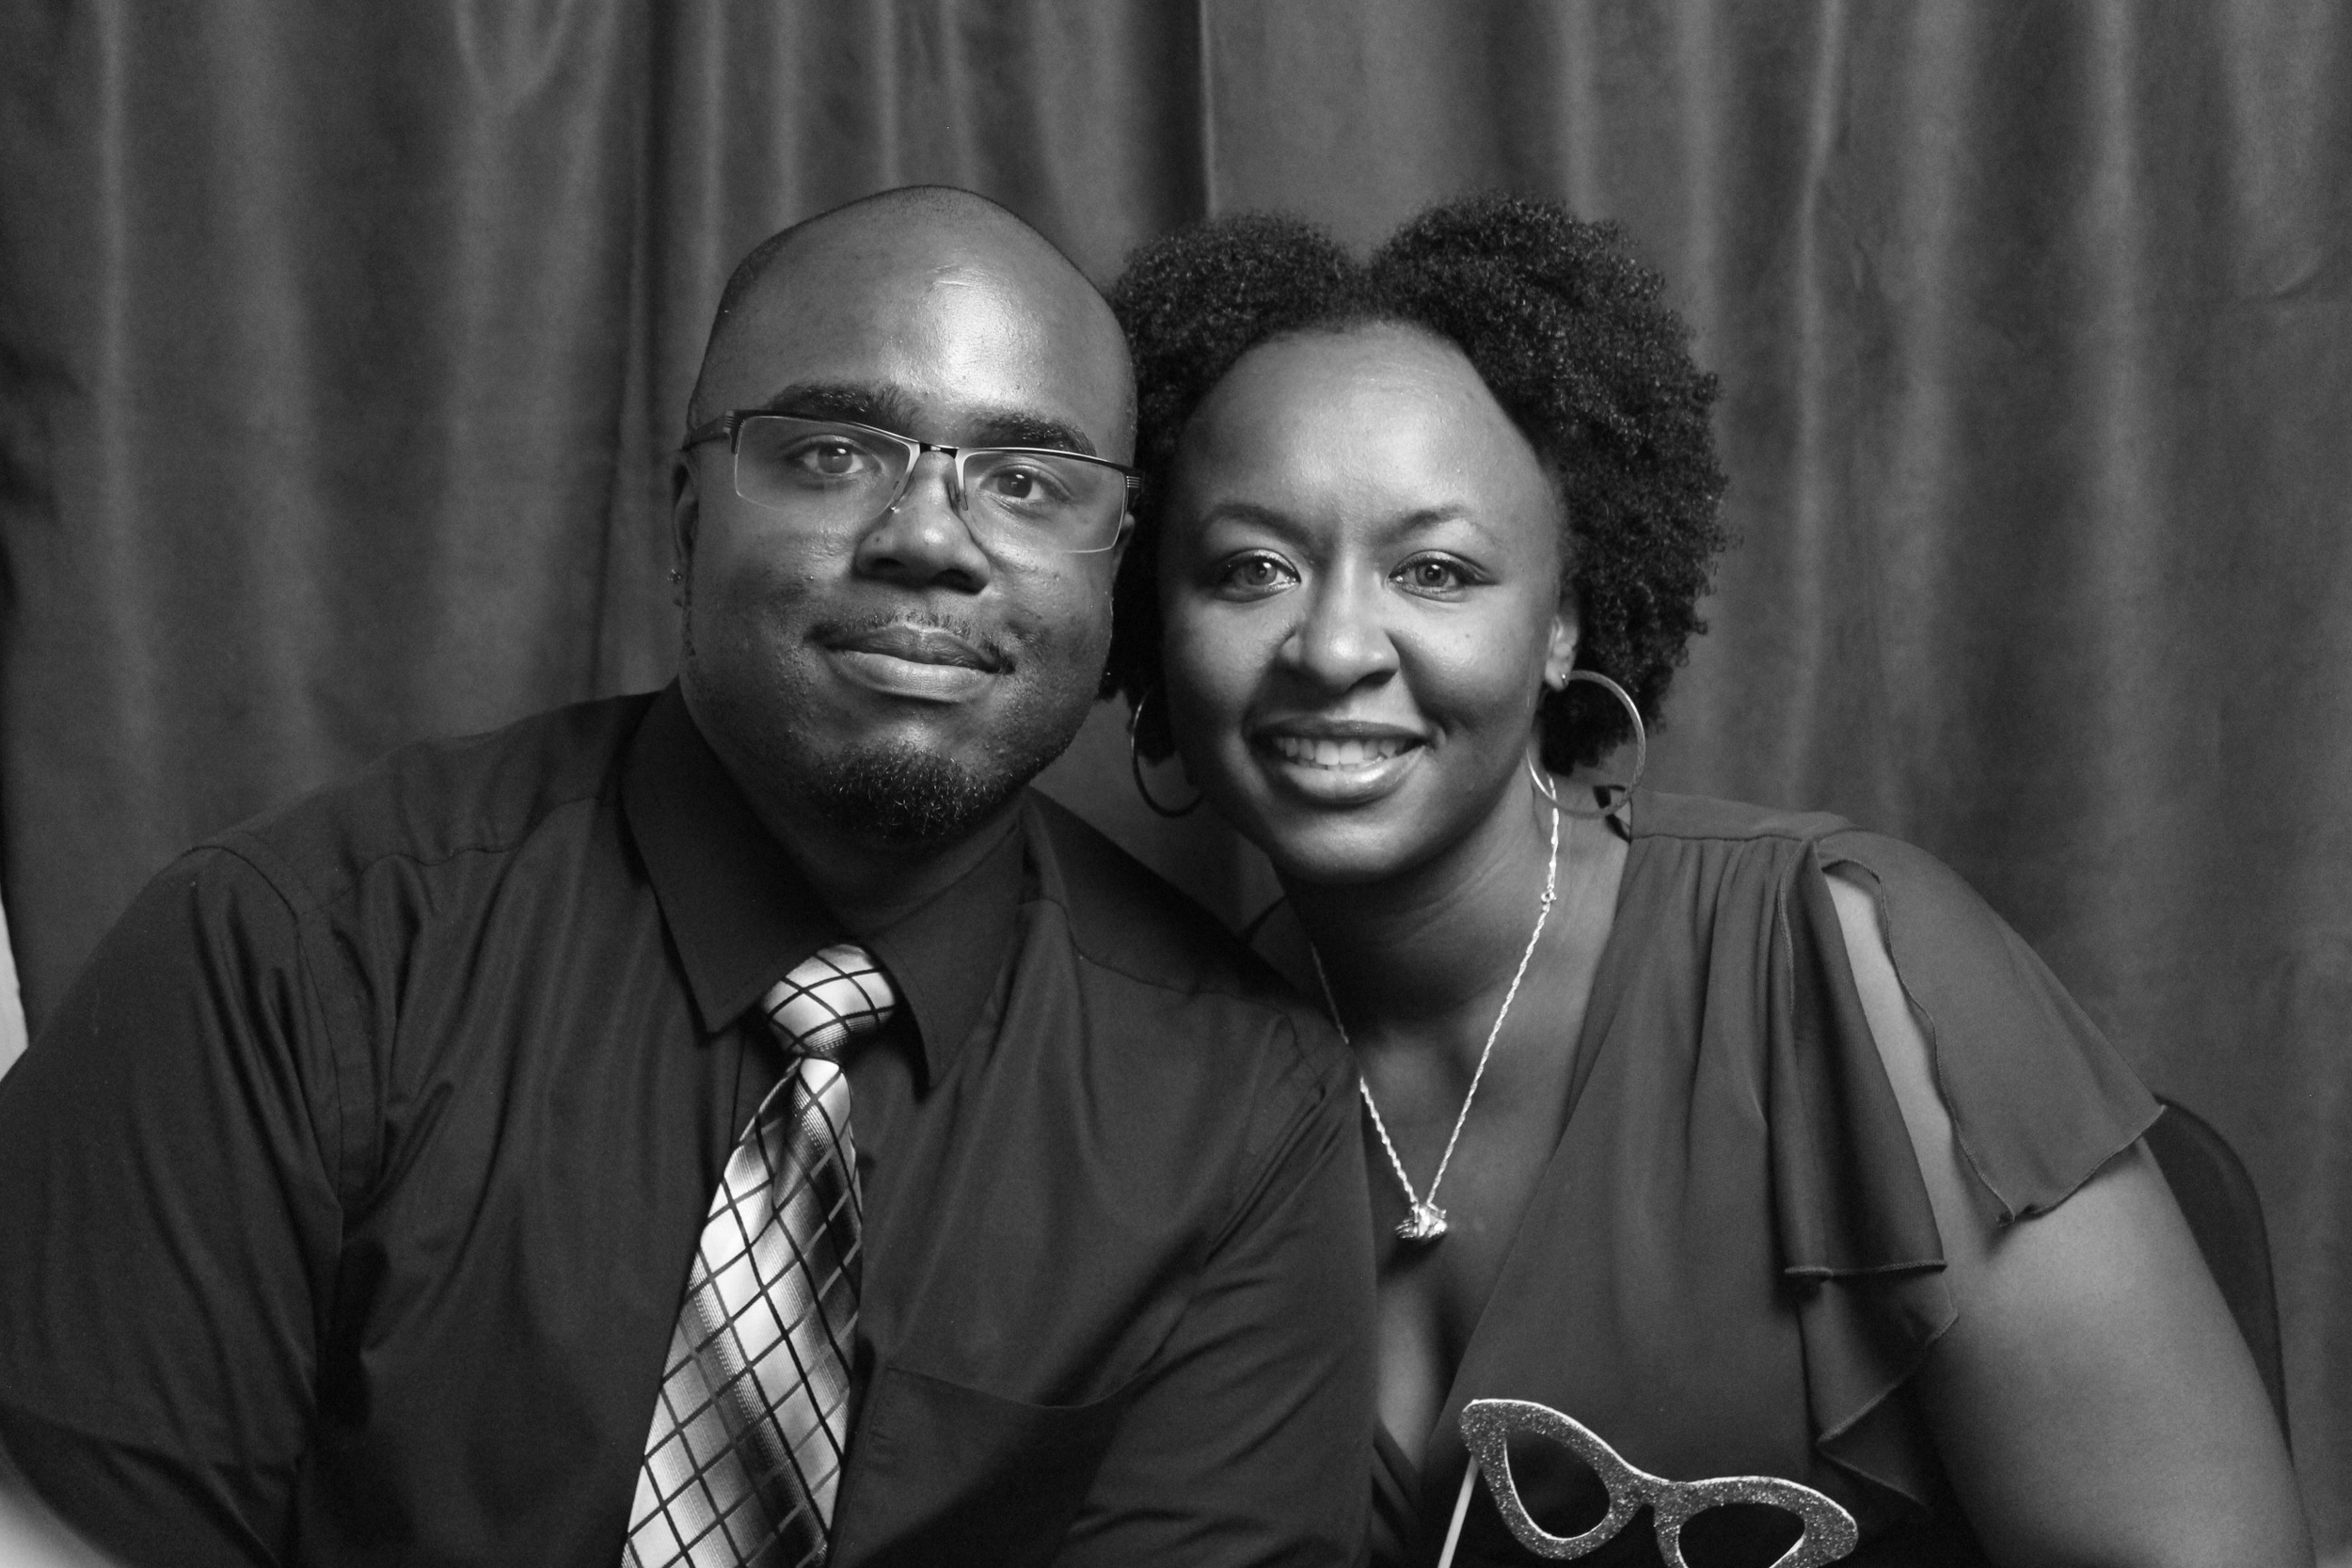 Ann-Marie & Maurice Photo Booth Wedding (7).jpg